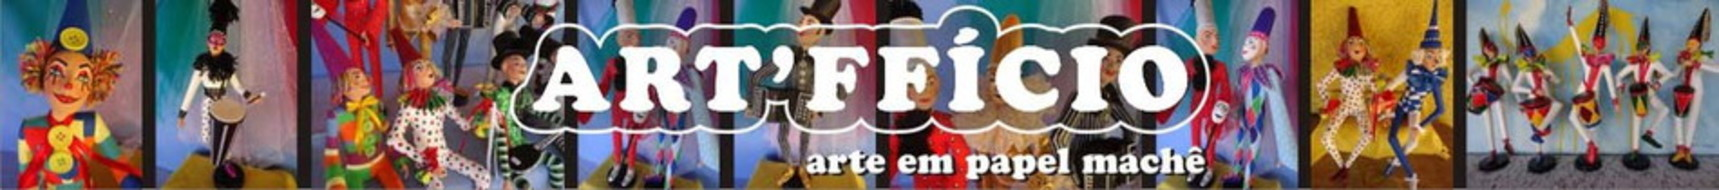 ***ART'FFCIO*** Ofcio das Artes